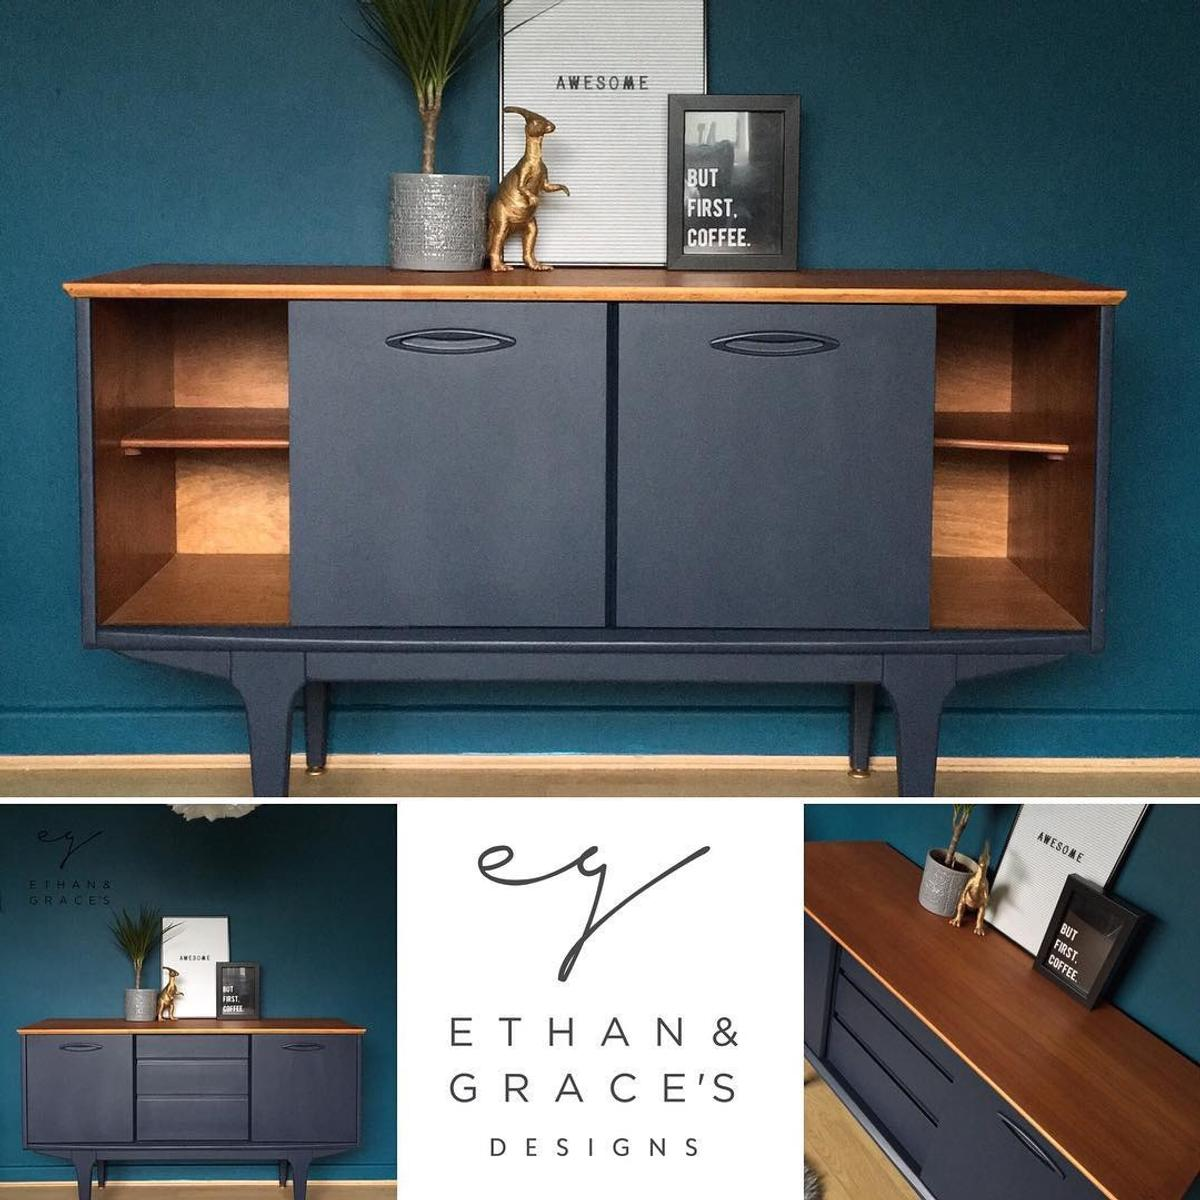 Sideboard Modern Pro Painted Jentique Compact Sideboard Blue In Se19 Croydon For £499.00 For Sale | Shpock